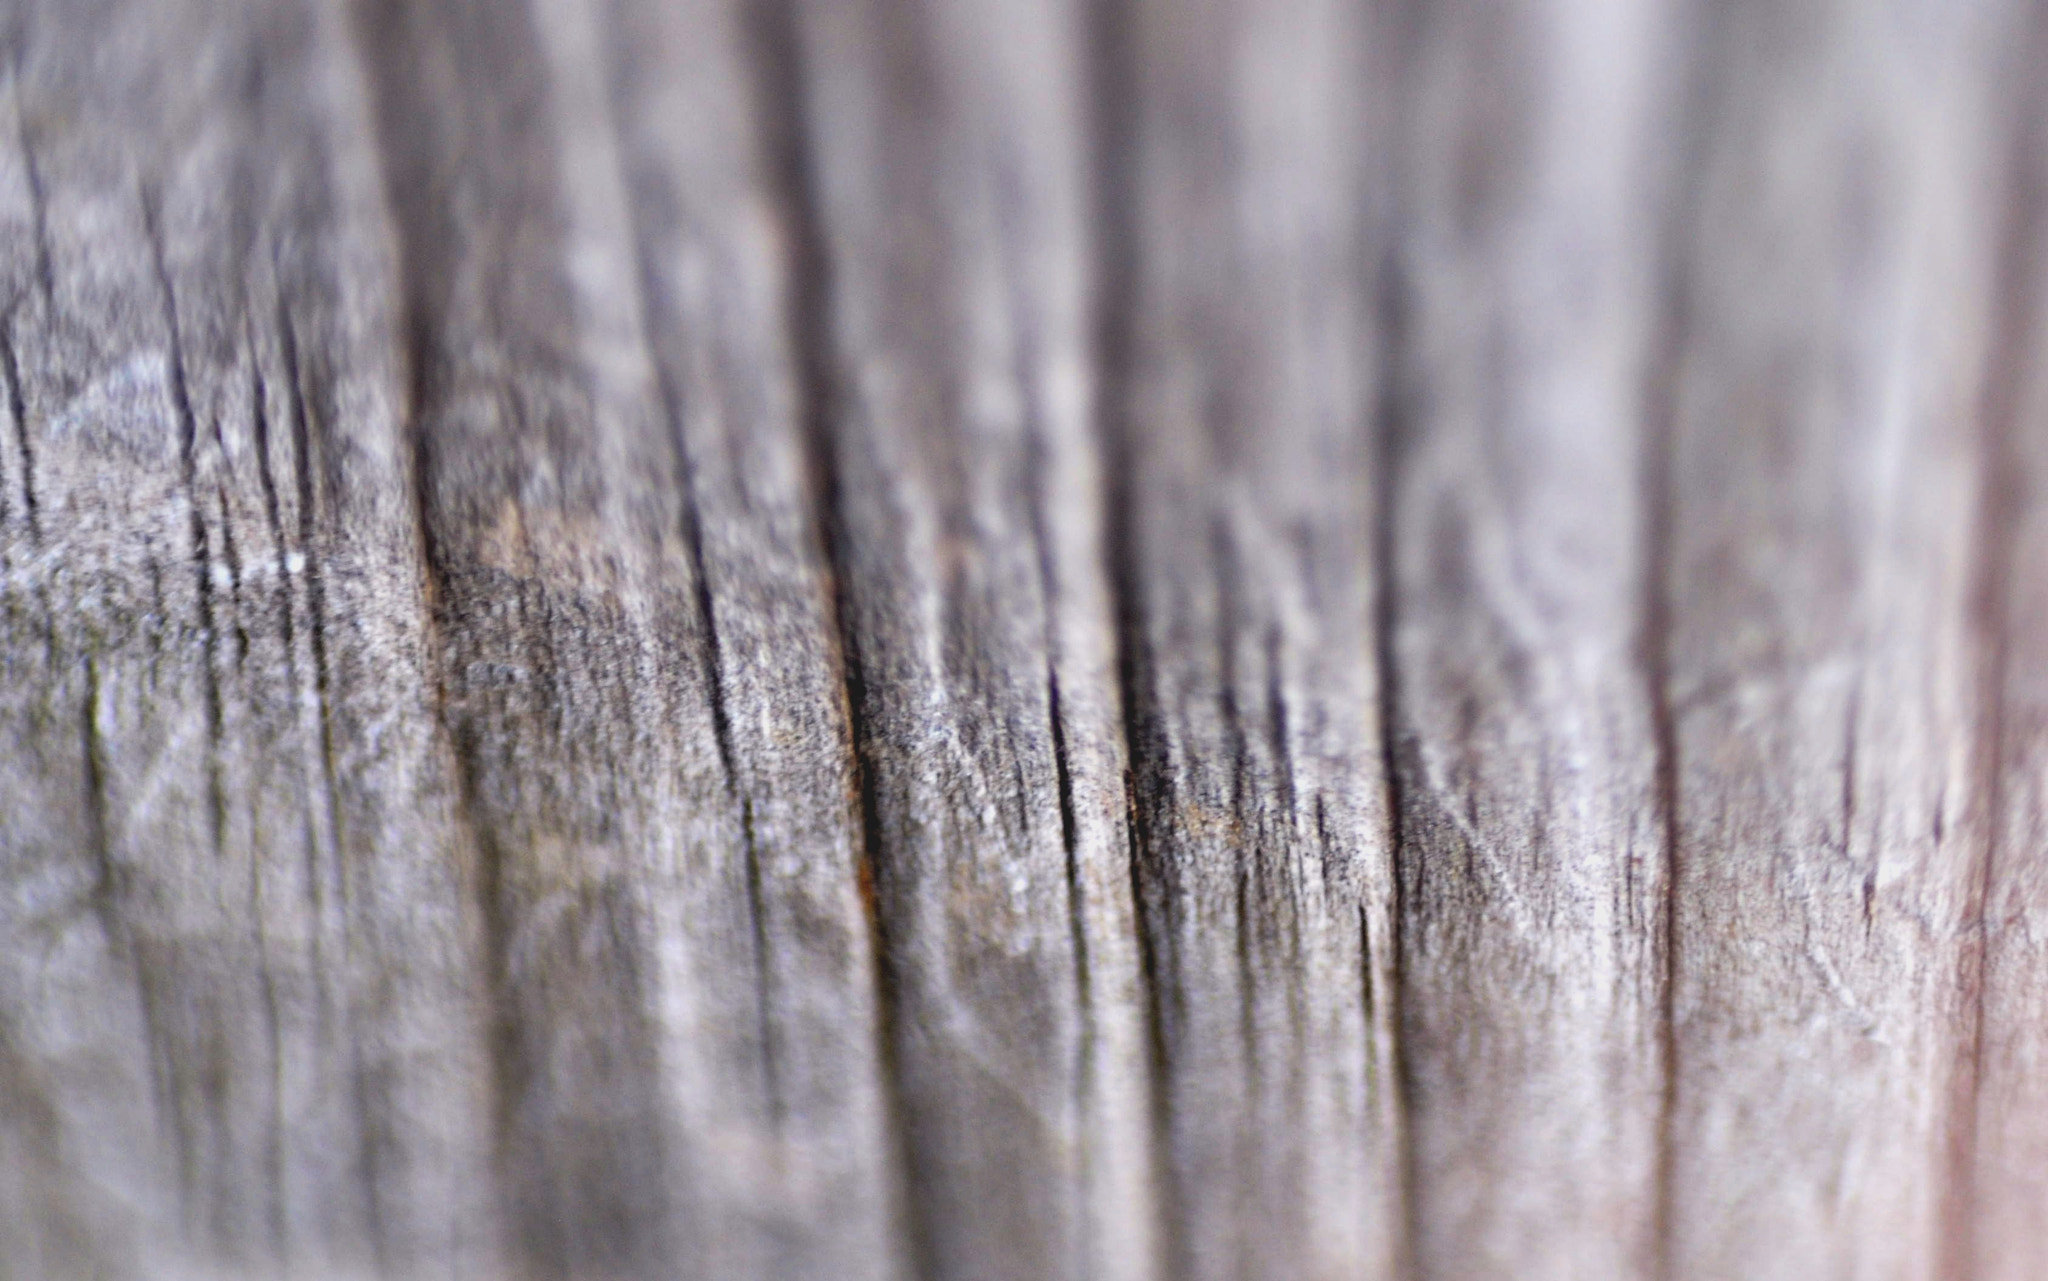 Photograph Creases  by Sam Wade on 500px